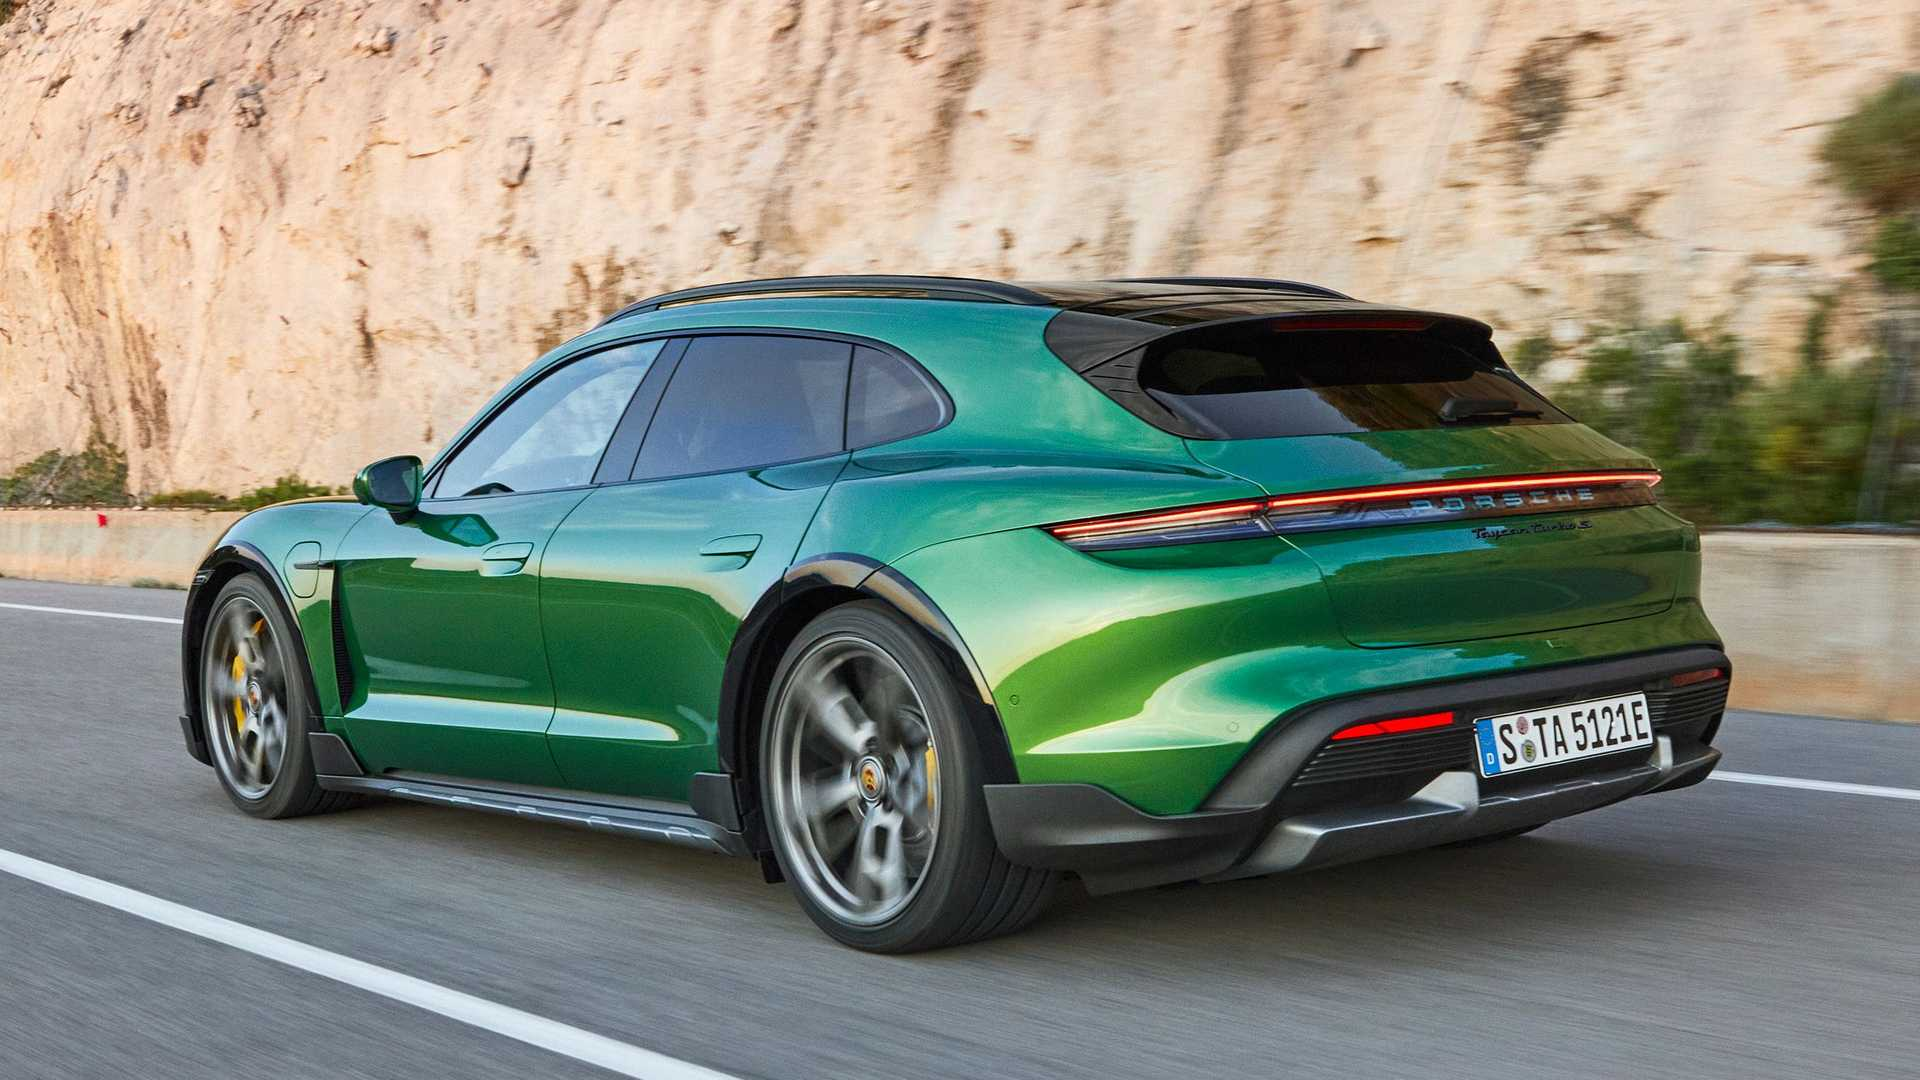 Porsche Taycan Cross Turismo Debuts With Huge Glass Roof, Gravel Mode